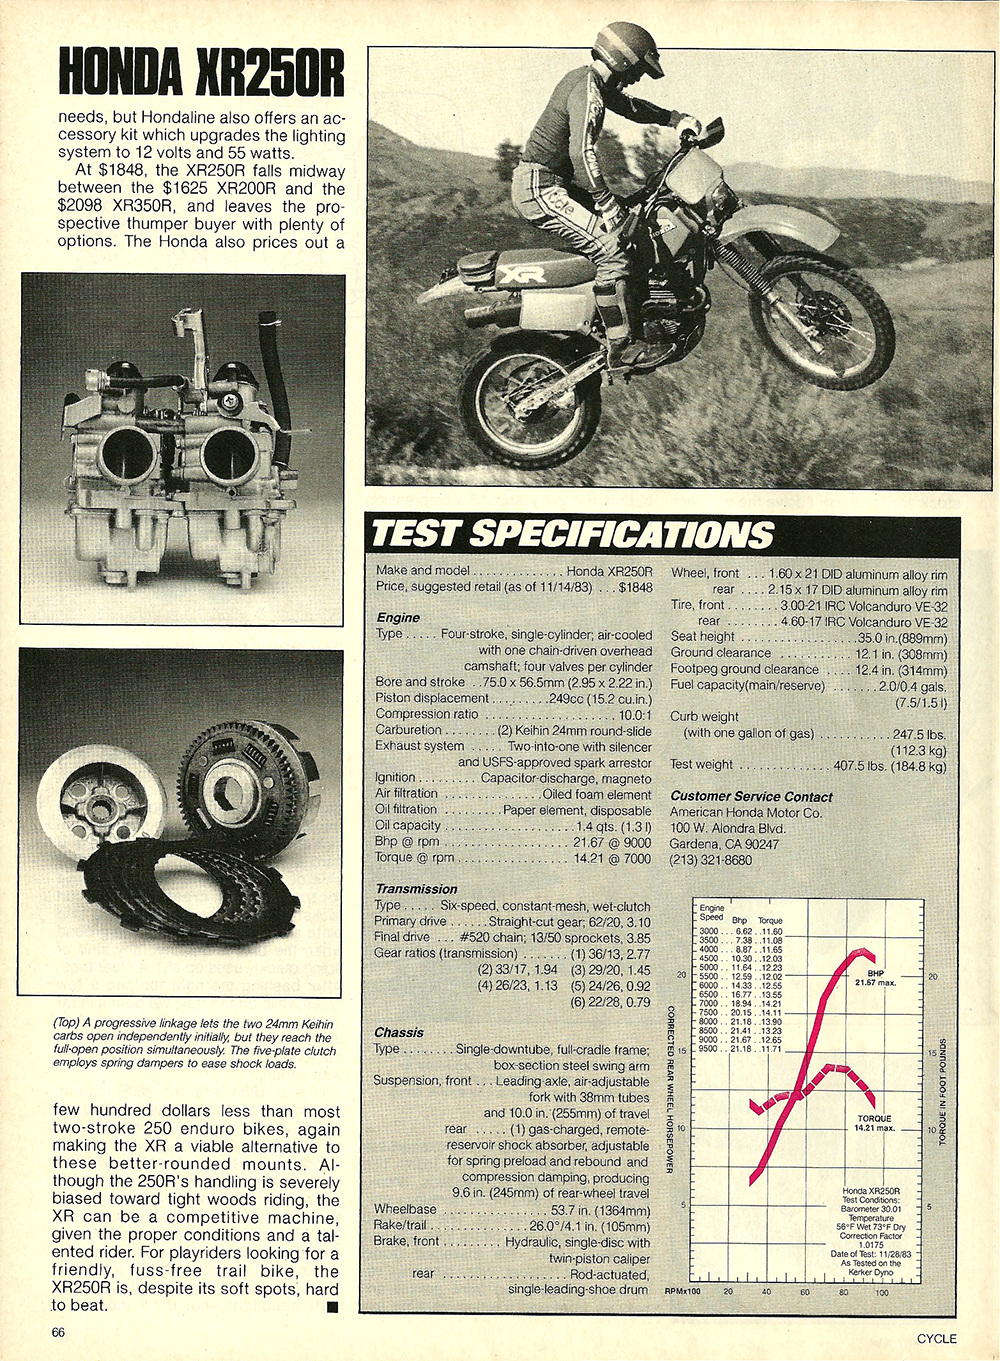 1984 Honda XR250R road test 7.jpg